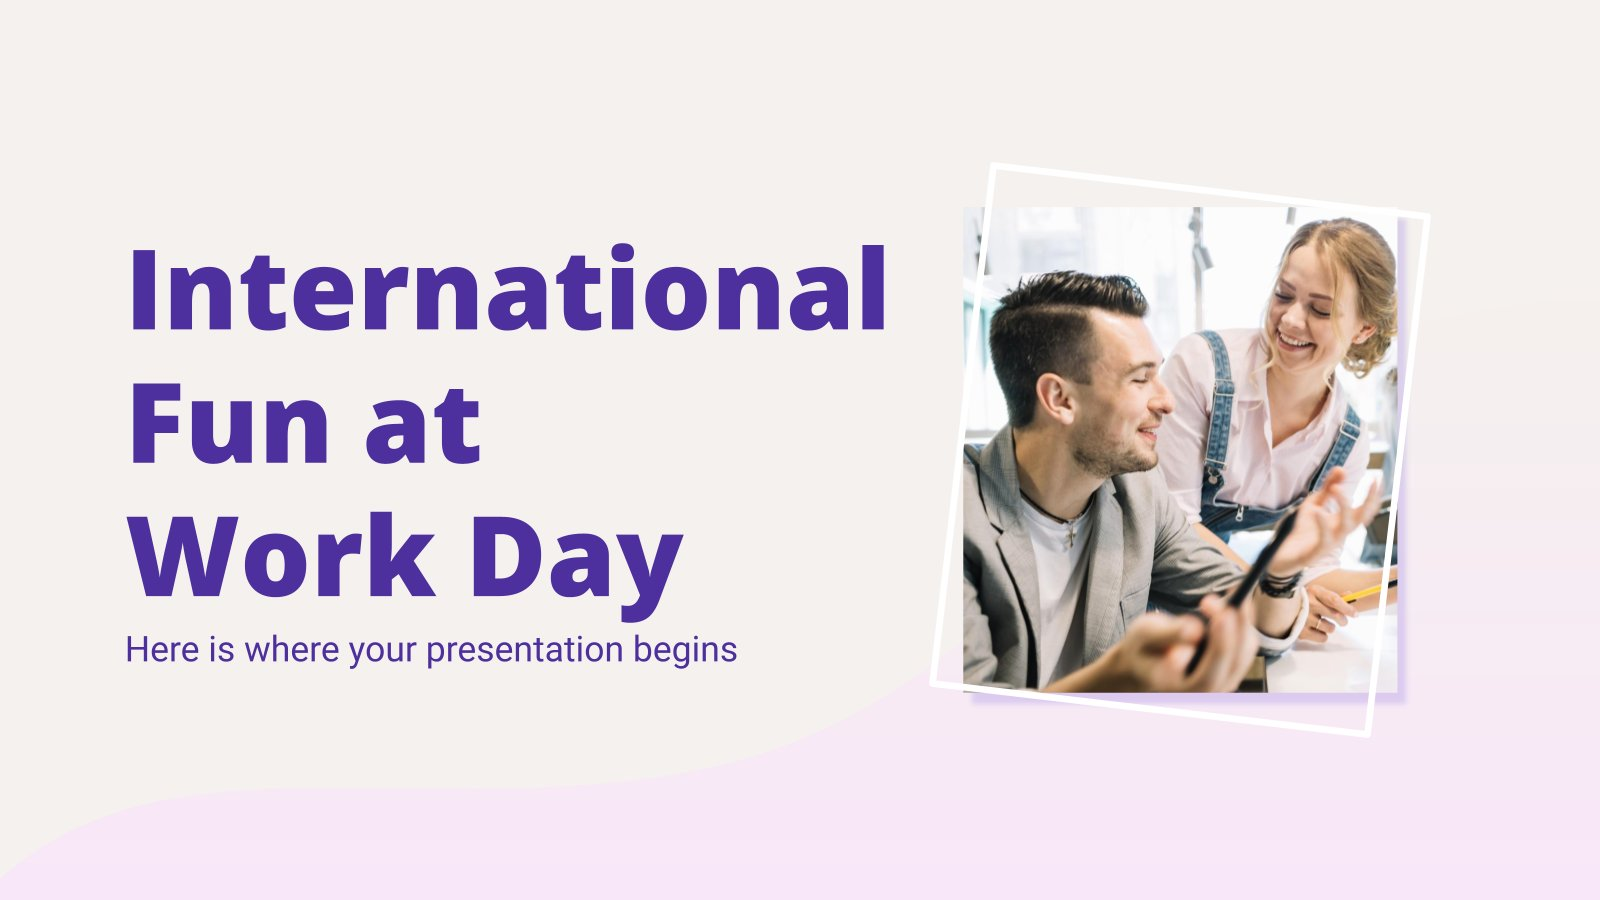 International Fun at Work Day presentation template